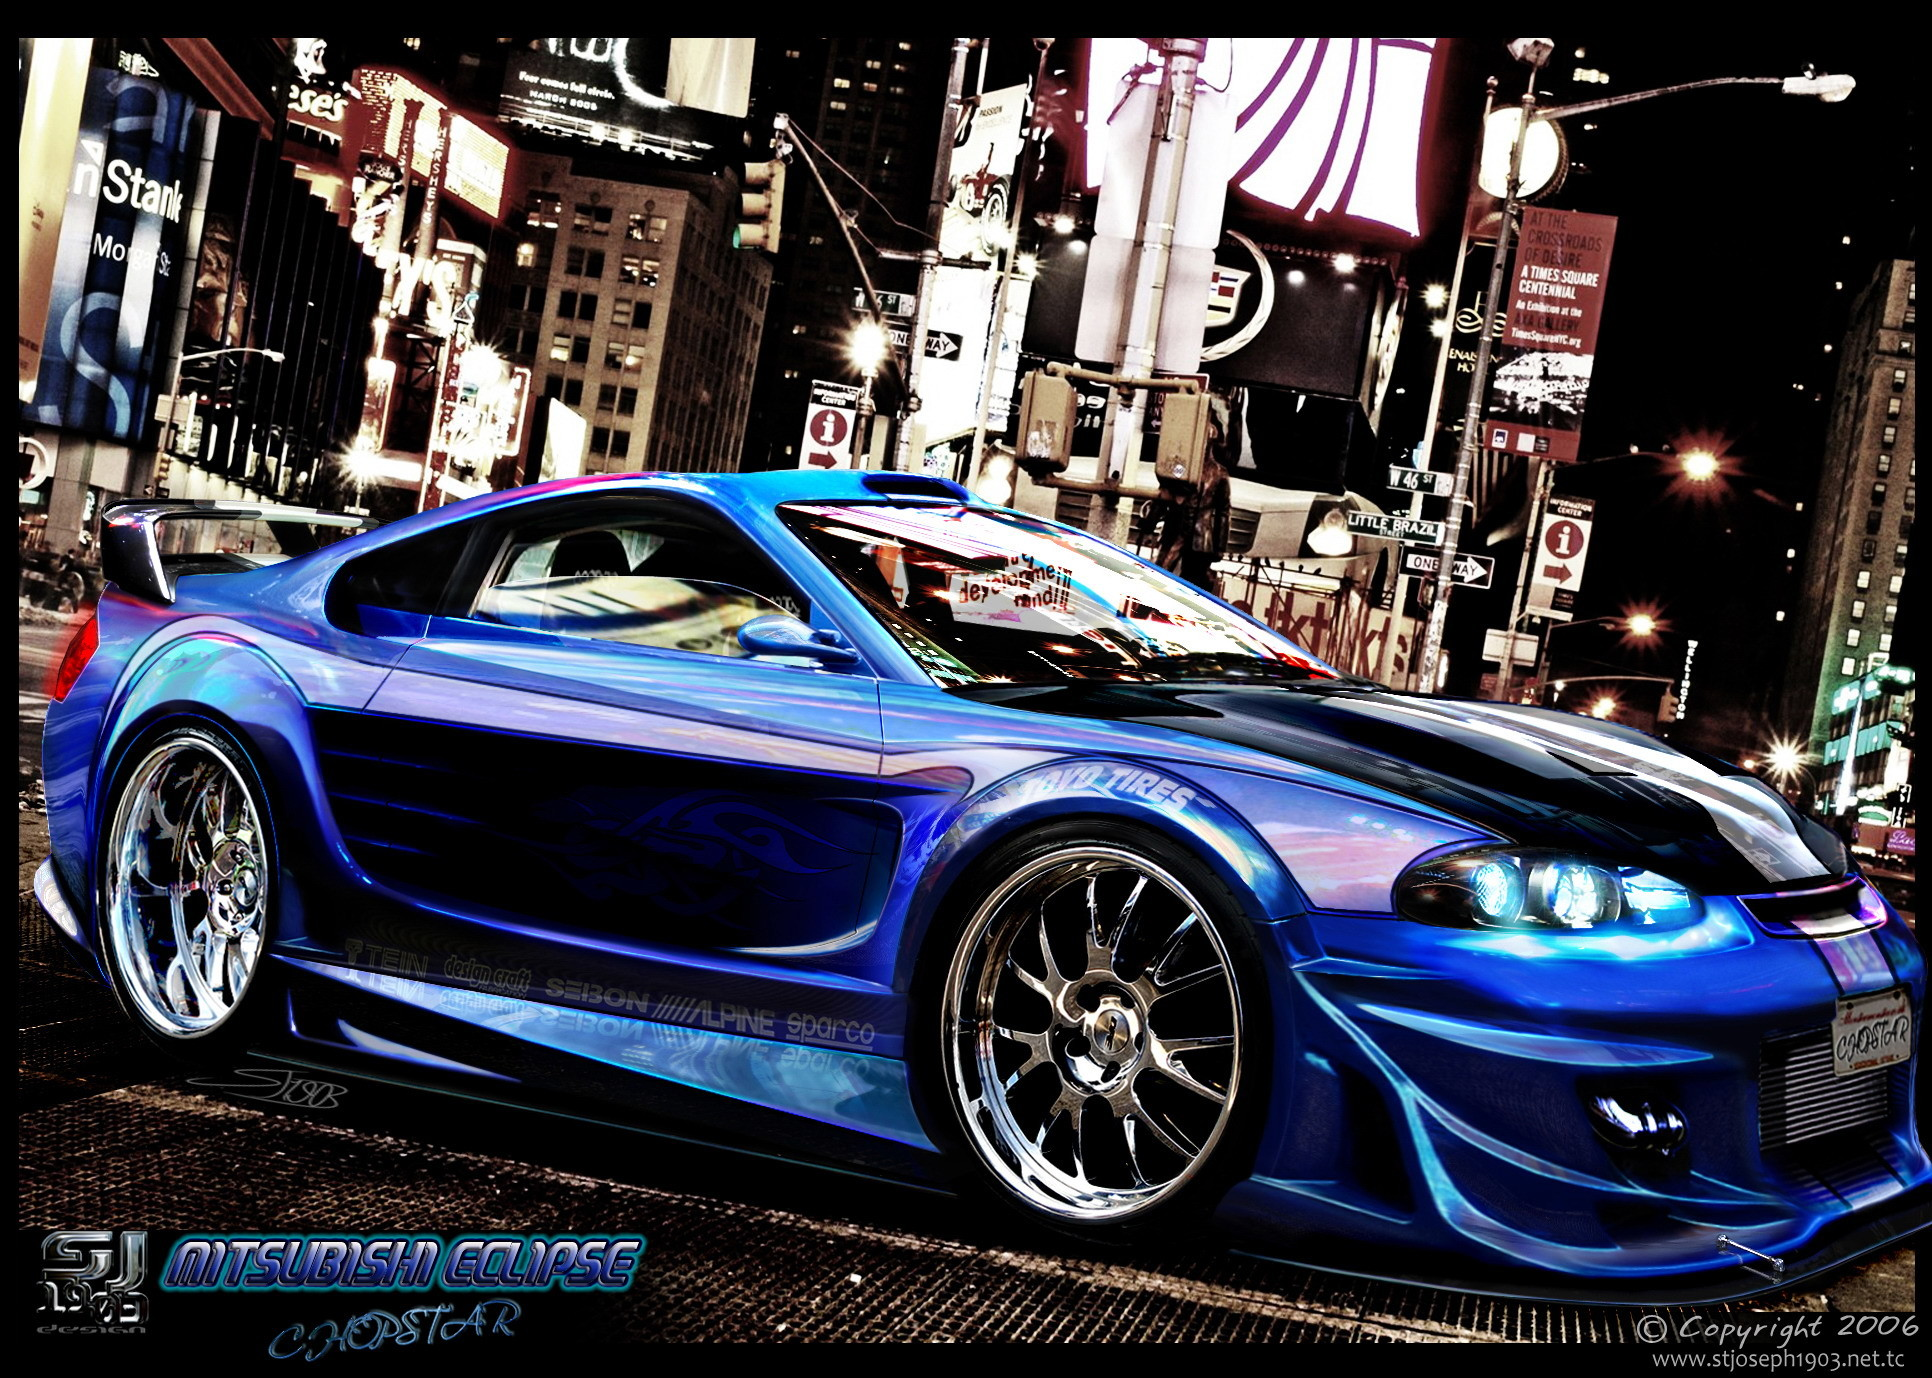 Most Beautiful Gallery of Mitsubishi Eclipse Backgrounds: px,  Jacquetta Buzzard